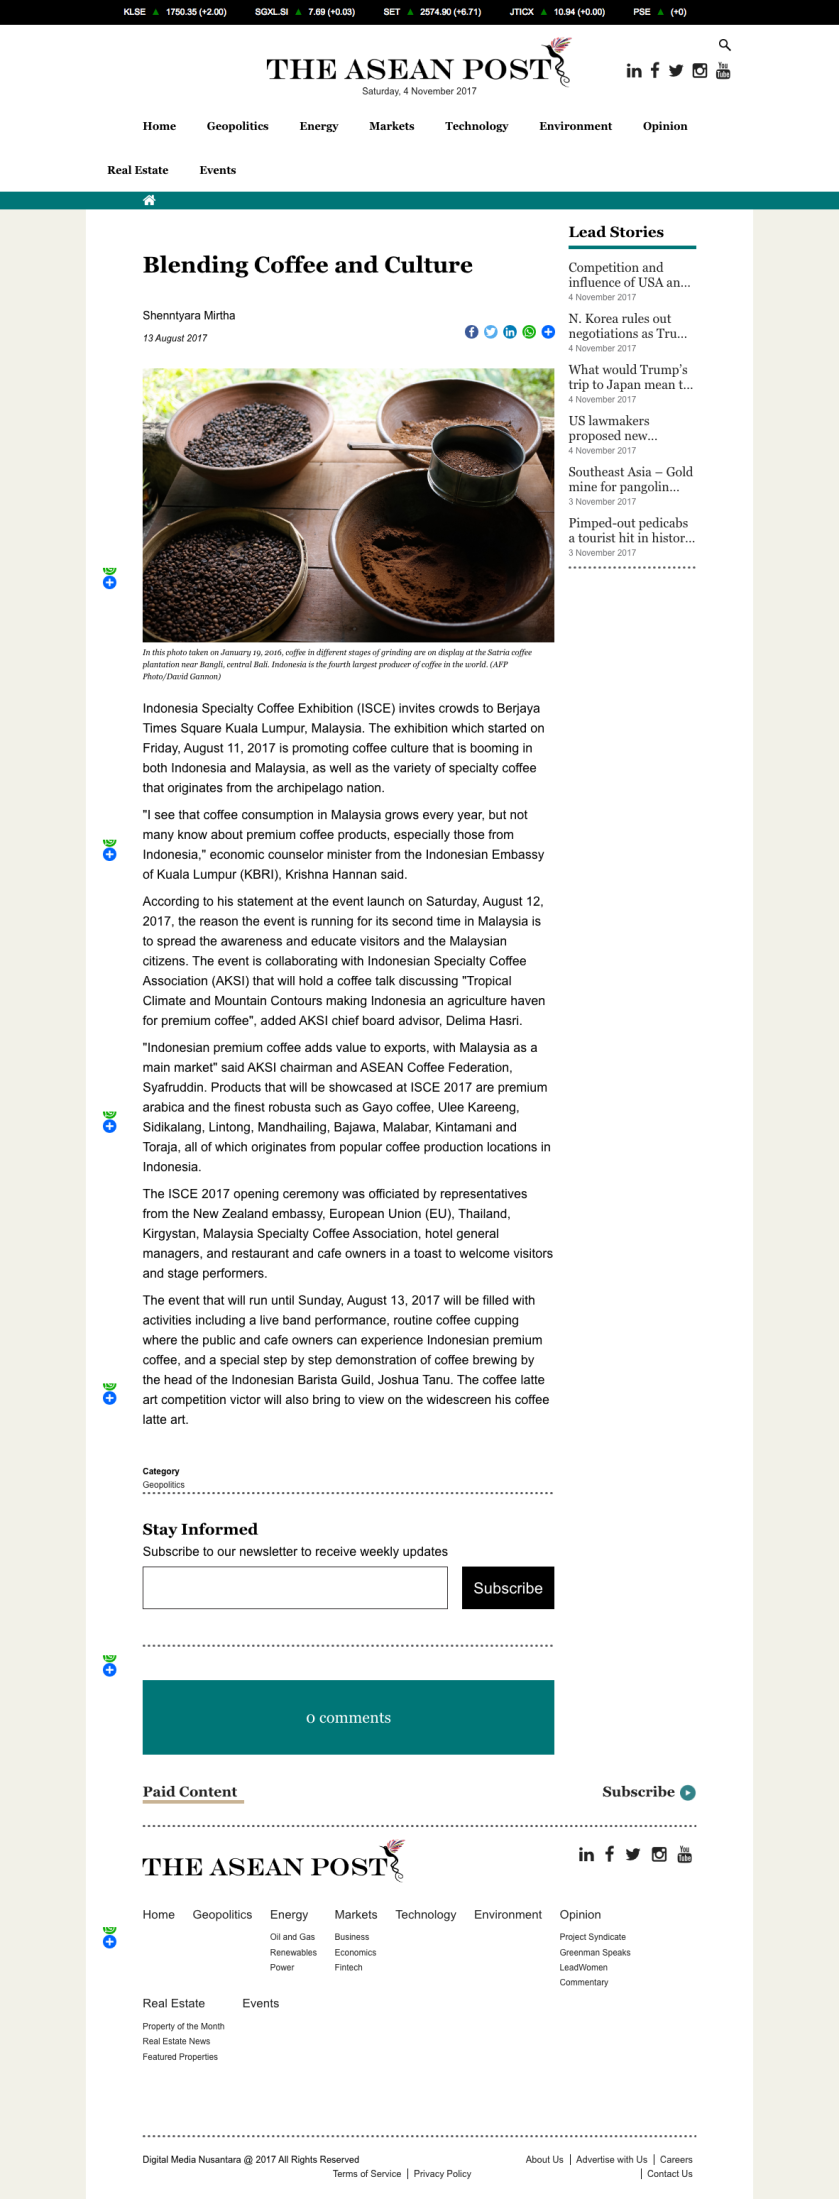 screencapture-theaseanpost-article-blending-coffee-and-culture-1509804630281